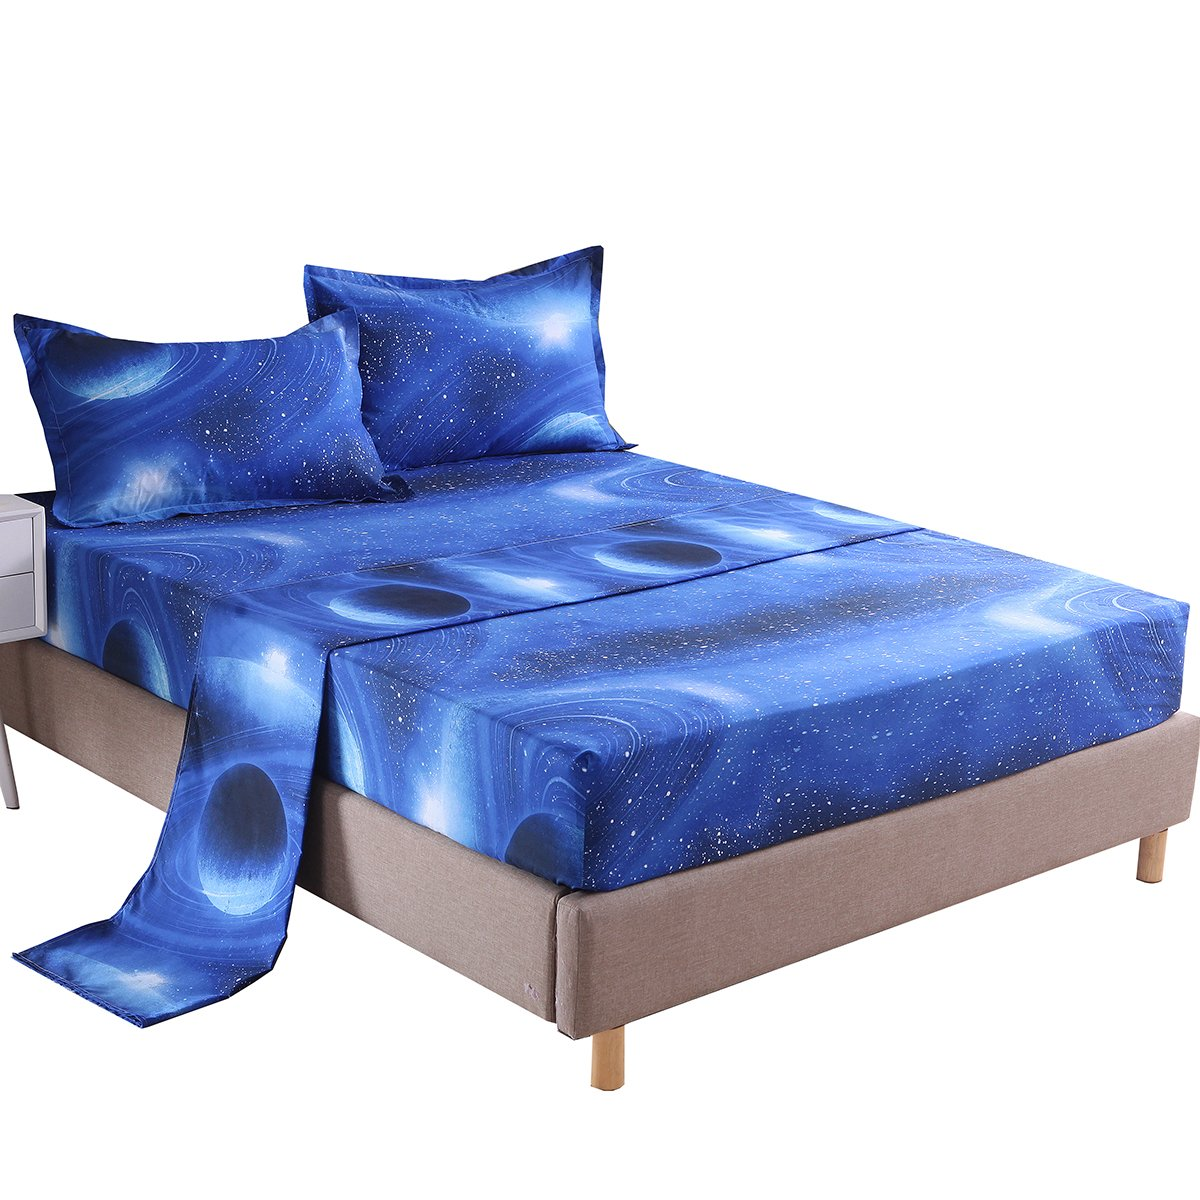 Cozzy 3pc Bed Sheets Set Outer Space Glalaxy Pattern Polyster Flat & Fitted Sheets with 1 Pillowcase Twin Size